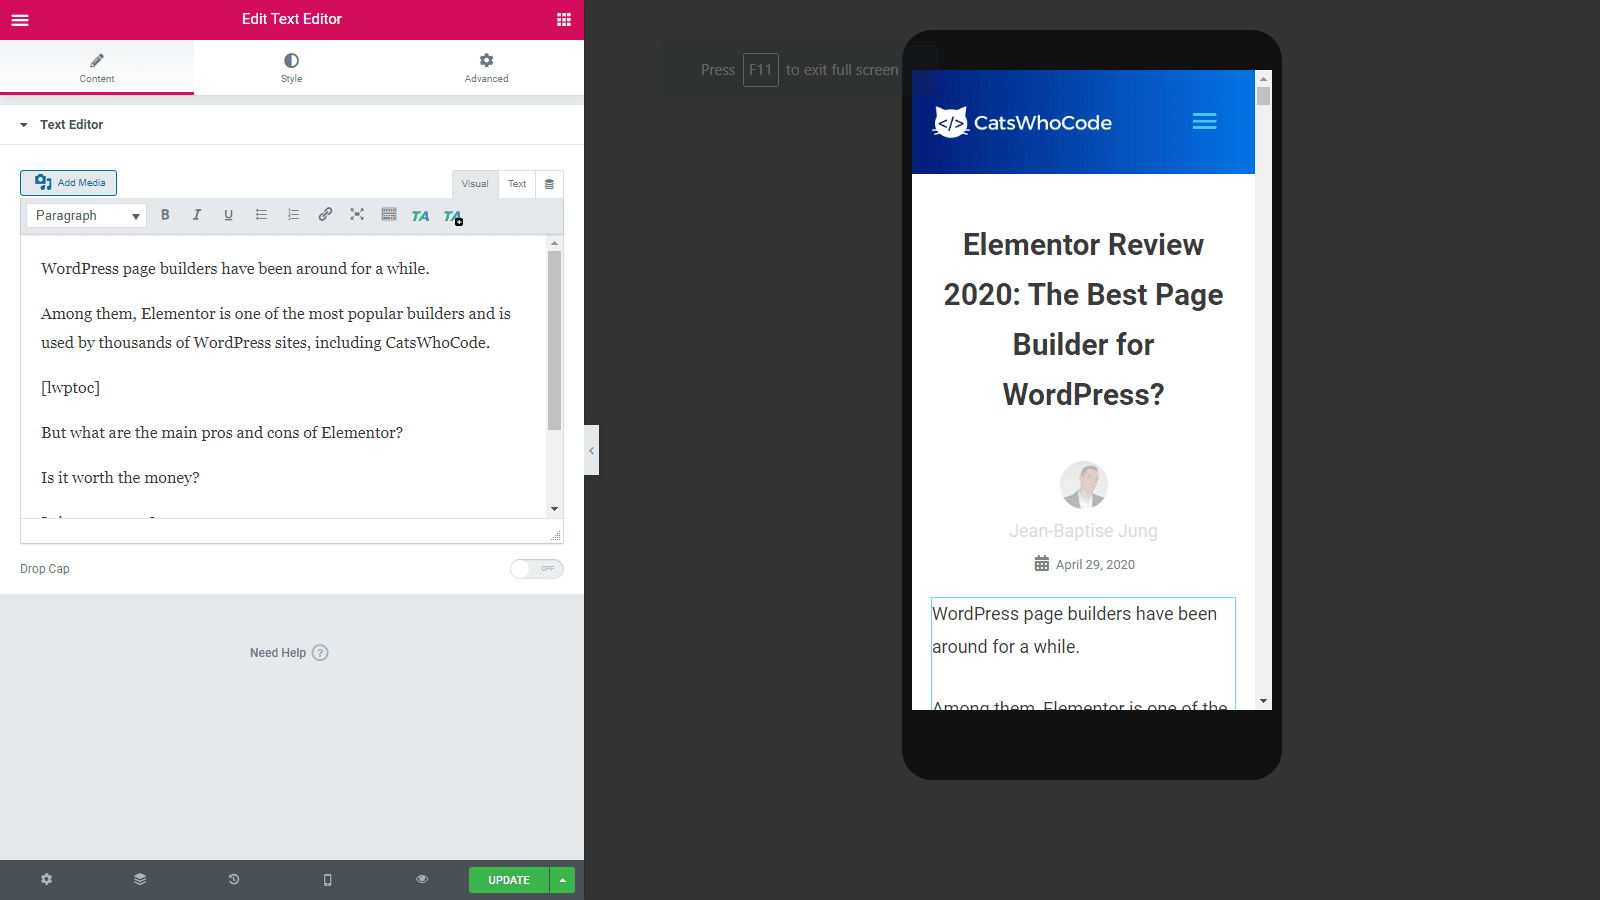 Elementor Review 2020: The Best Page Builder for WordPress? 2